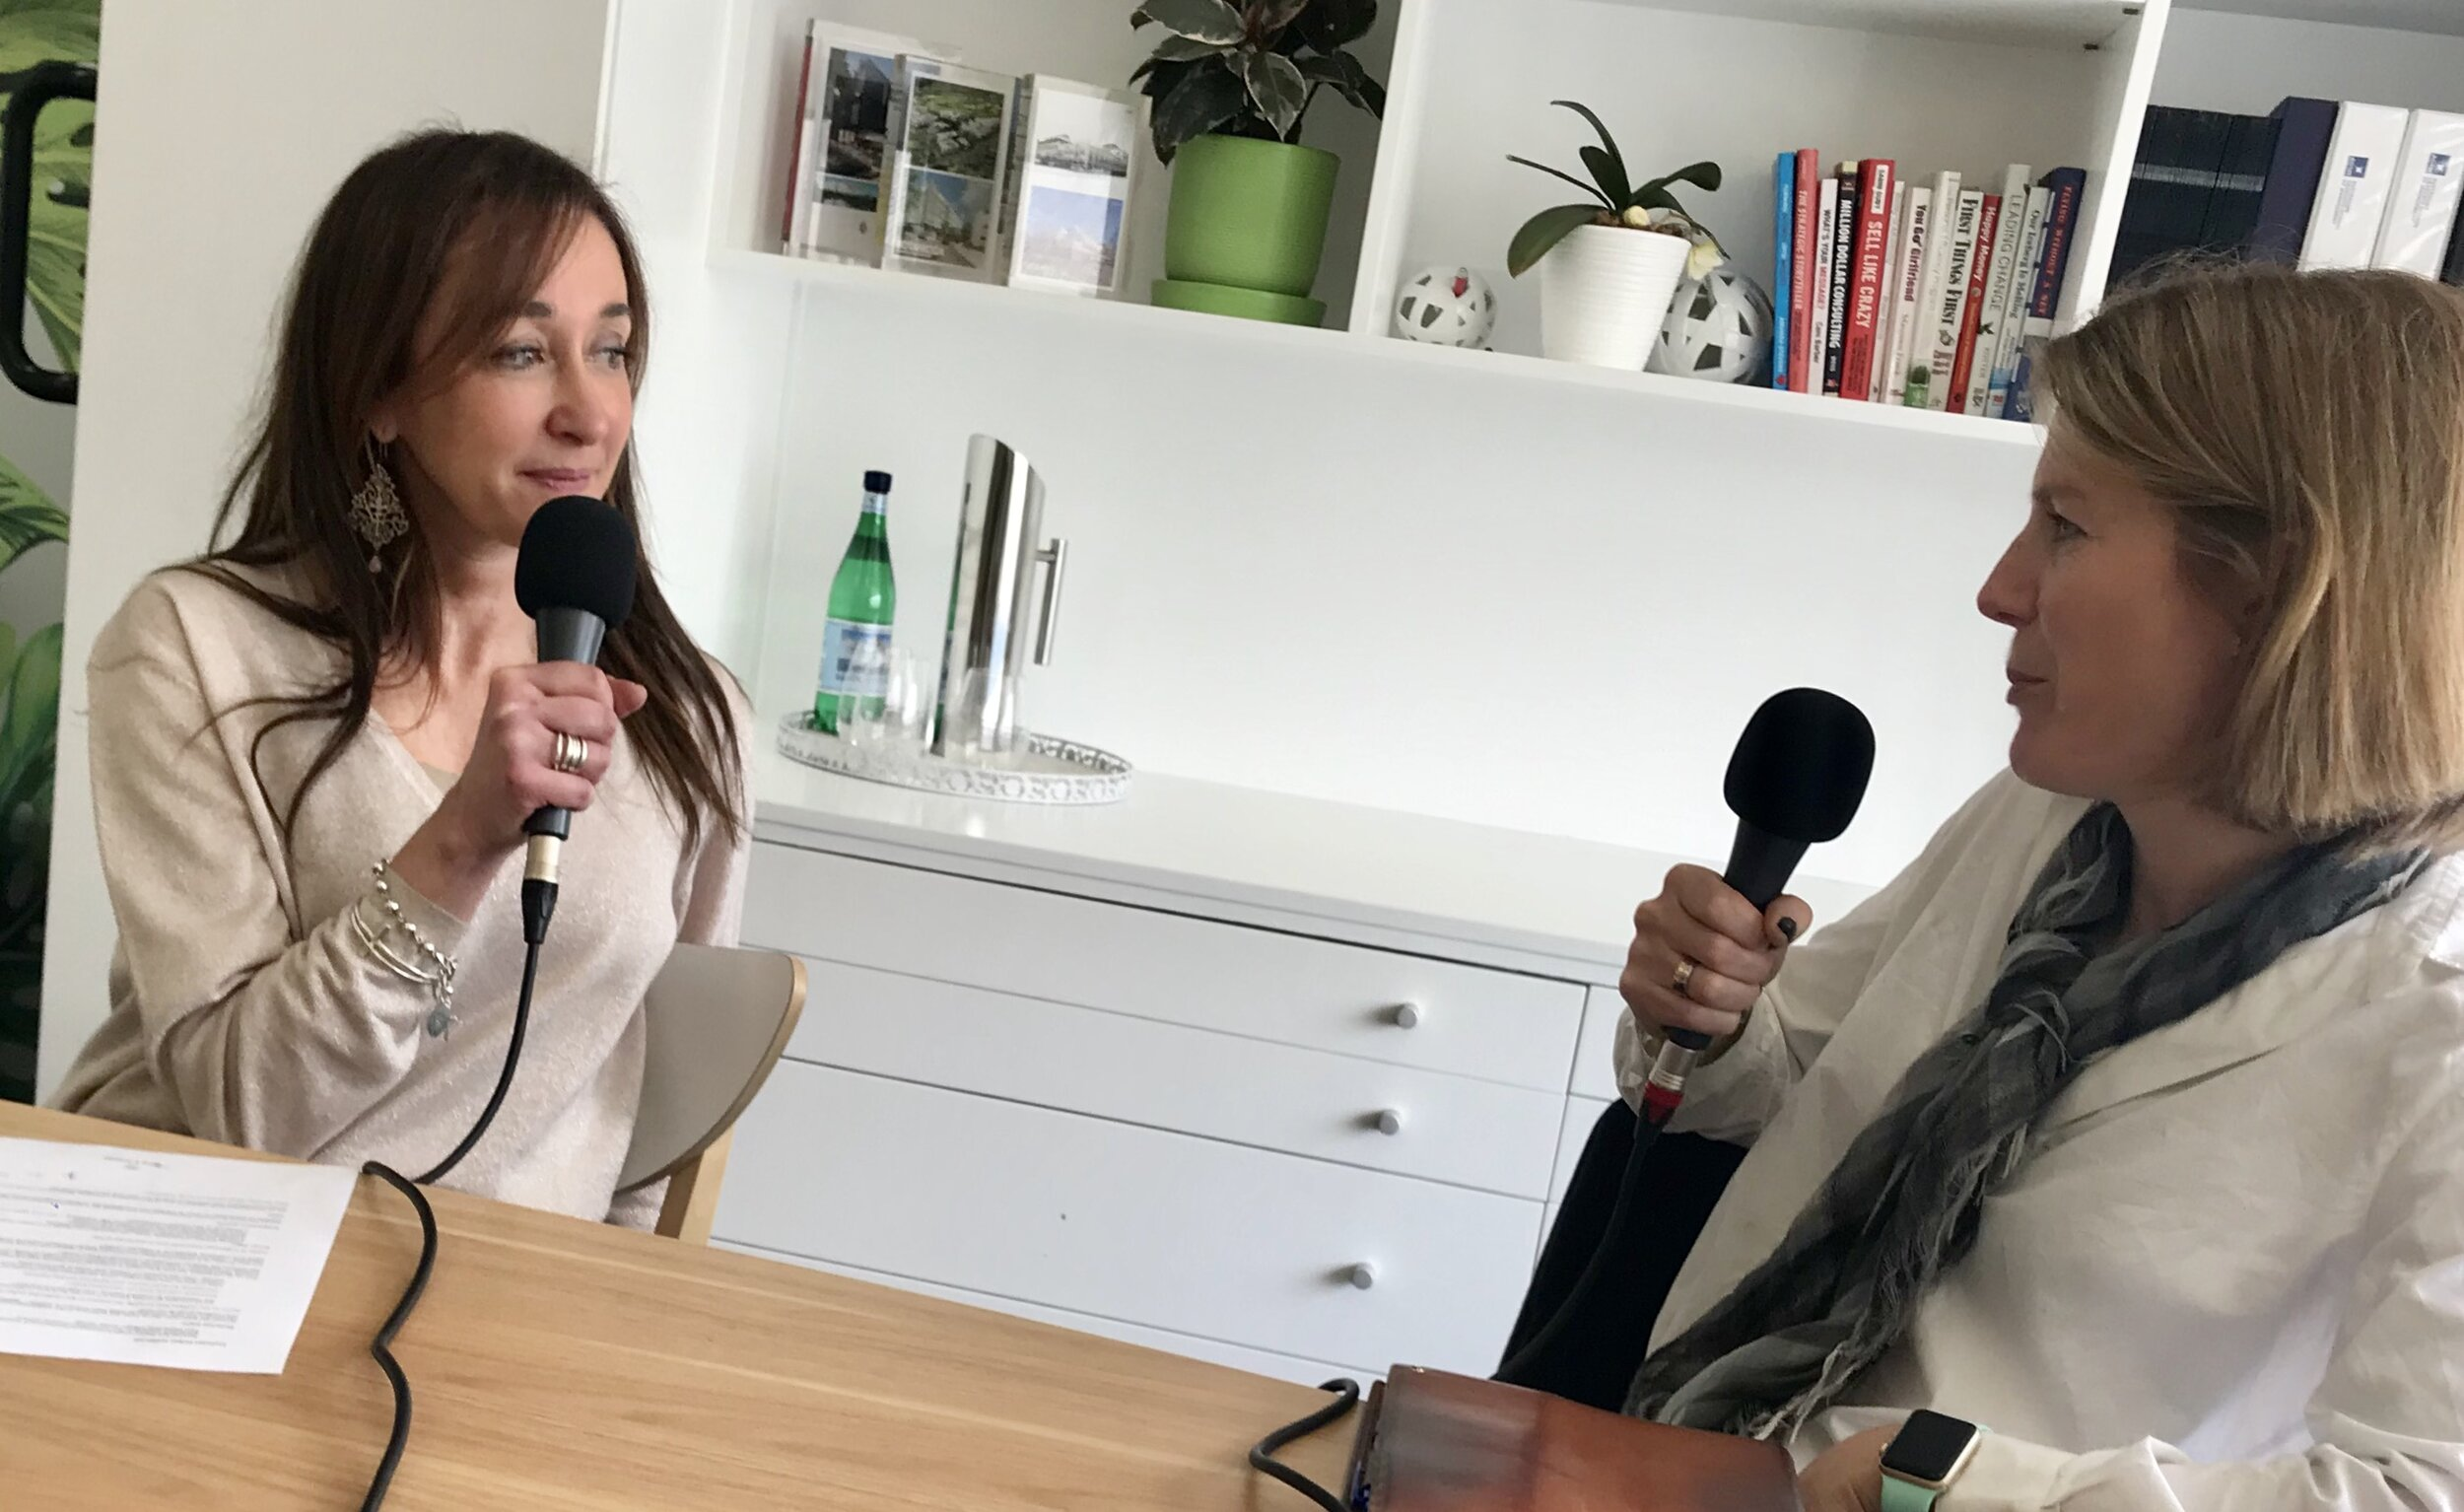 - In this Collective Conversation in Talking Property Anne Baker the founder of Two Crowns hosts this in depth interview with Sonia Miller, Director at Armitage Jones on the current property market and experiences in a tough market.